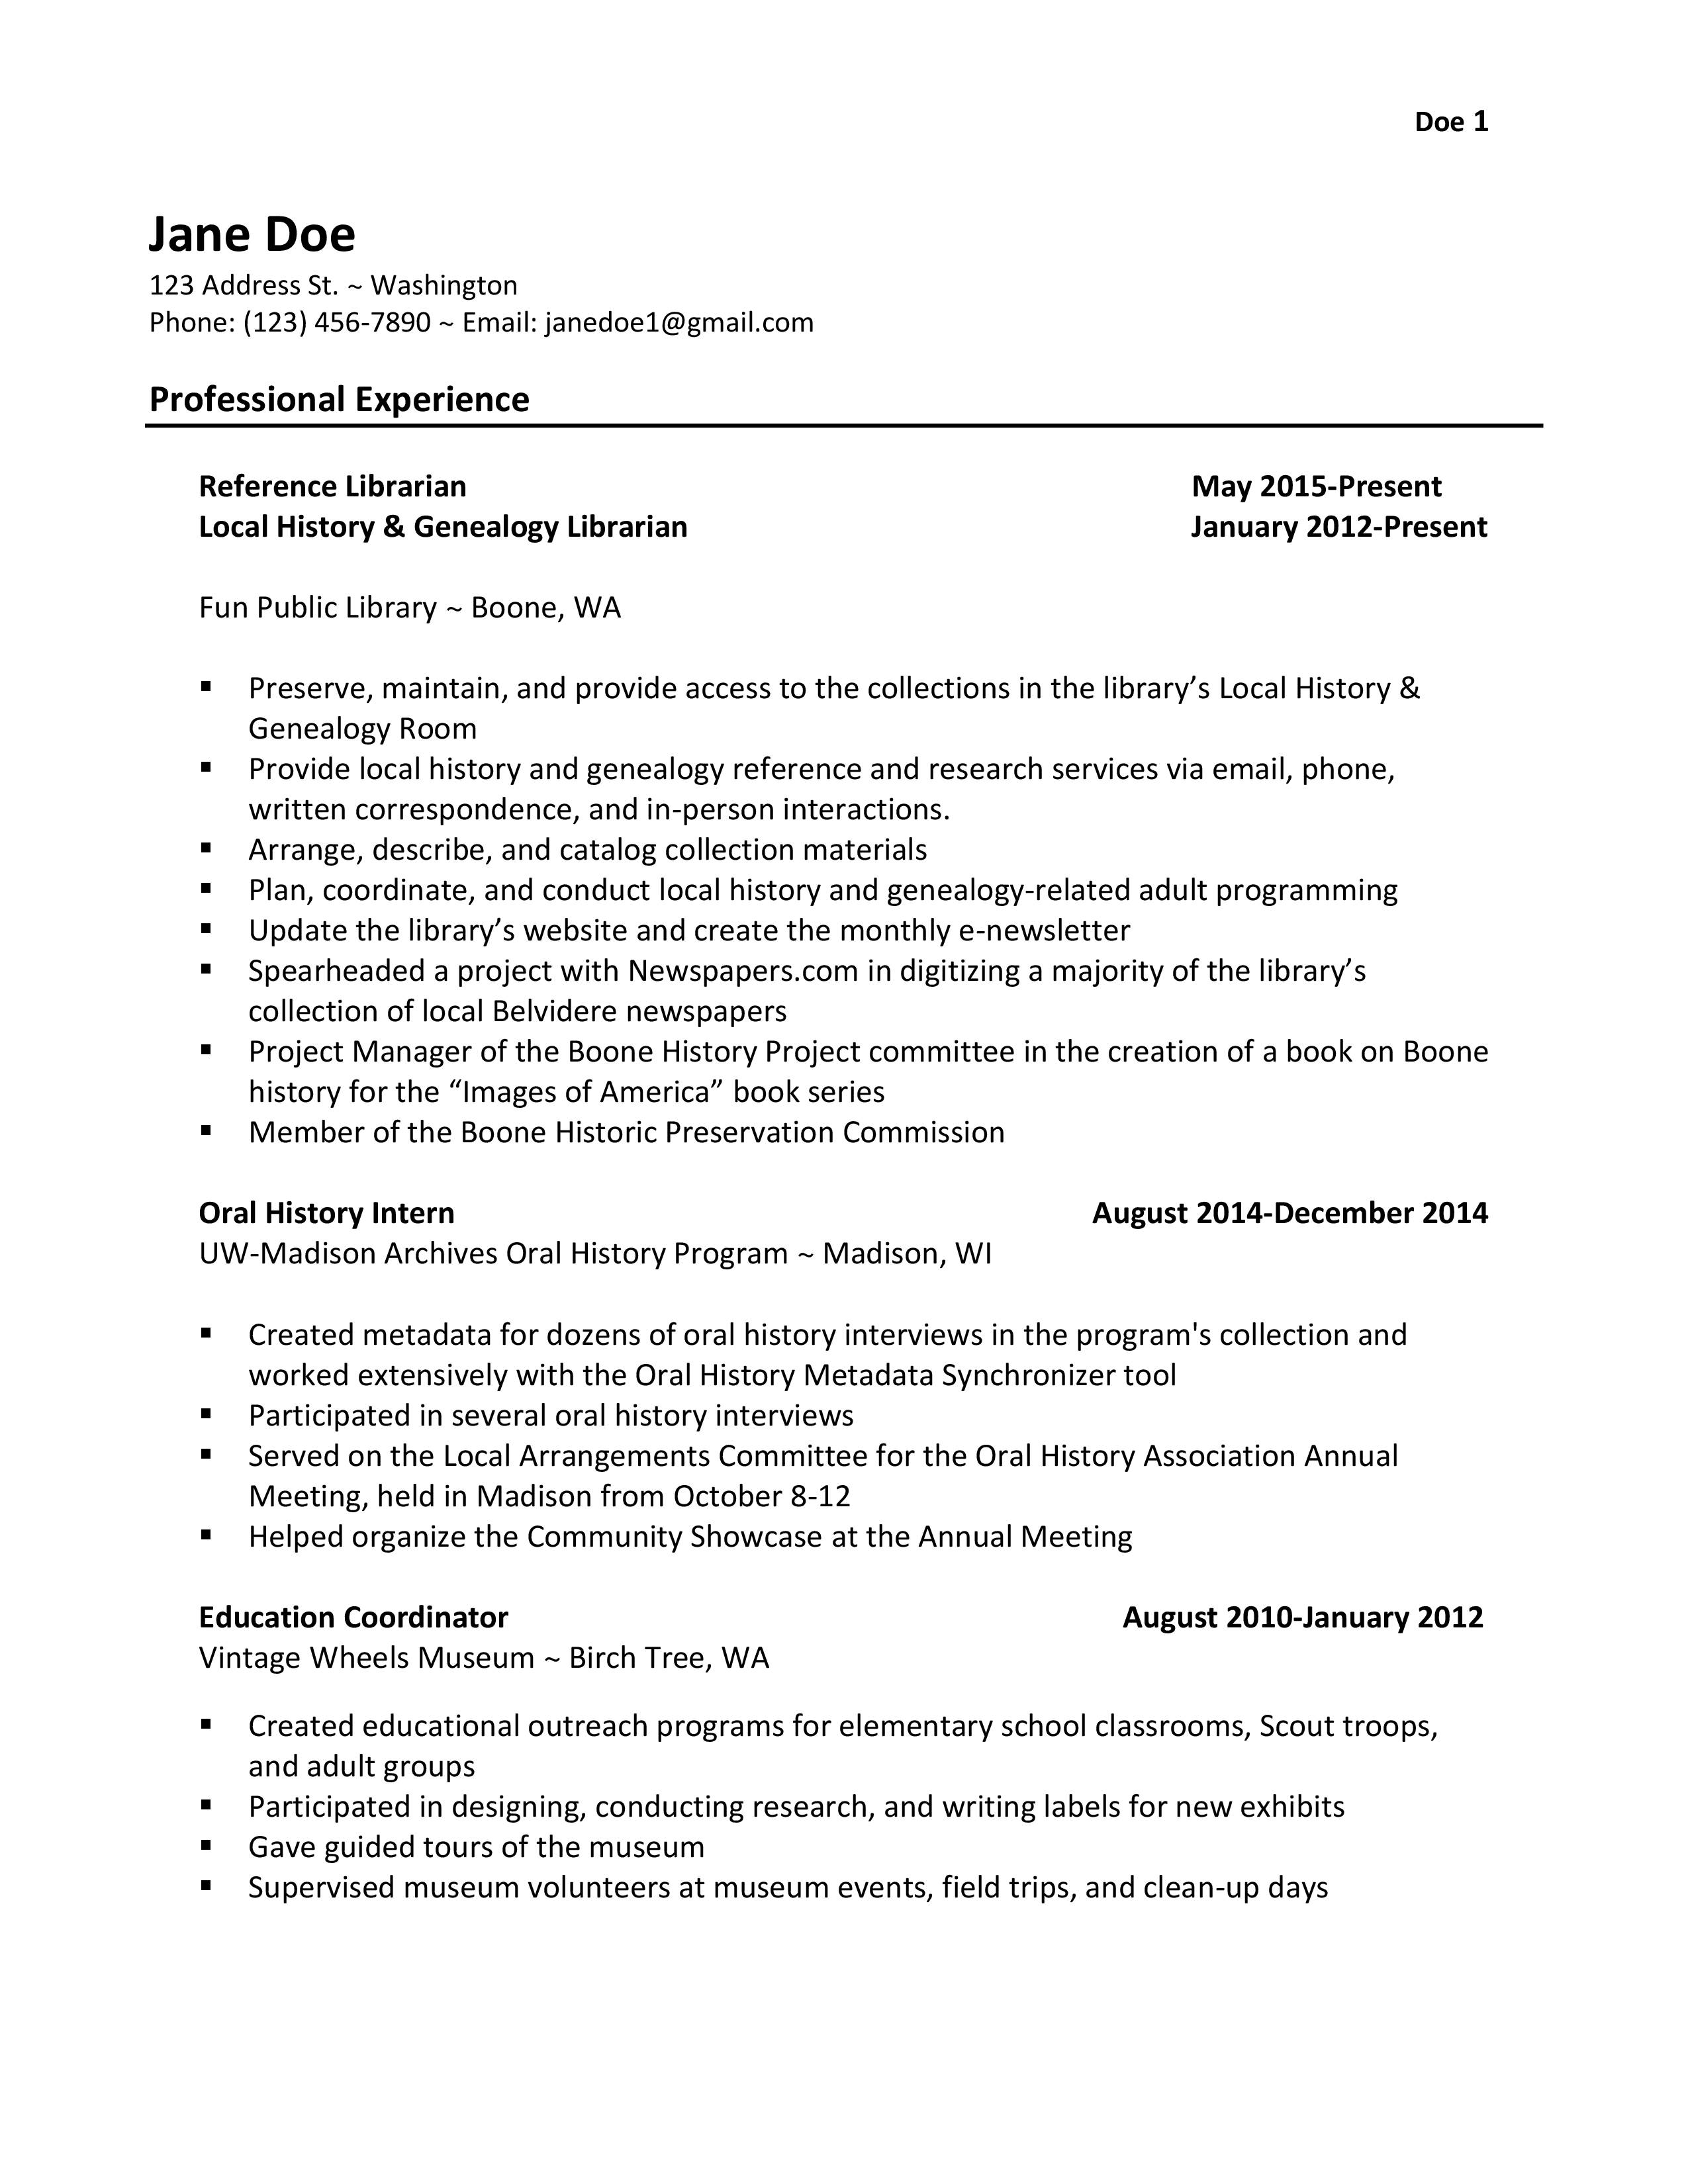 Resume Whats Good Objective Put Resume Sample For High School Foreign  Language Skills In Resume Sample  Whats A Good Objective To Put On A Resume